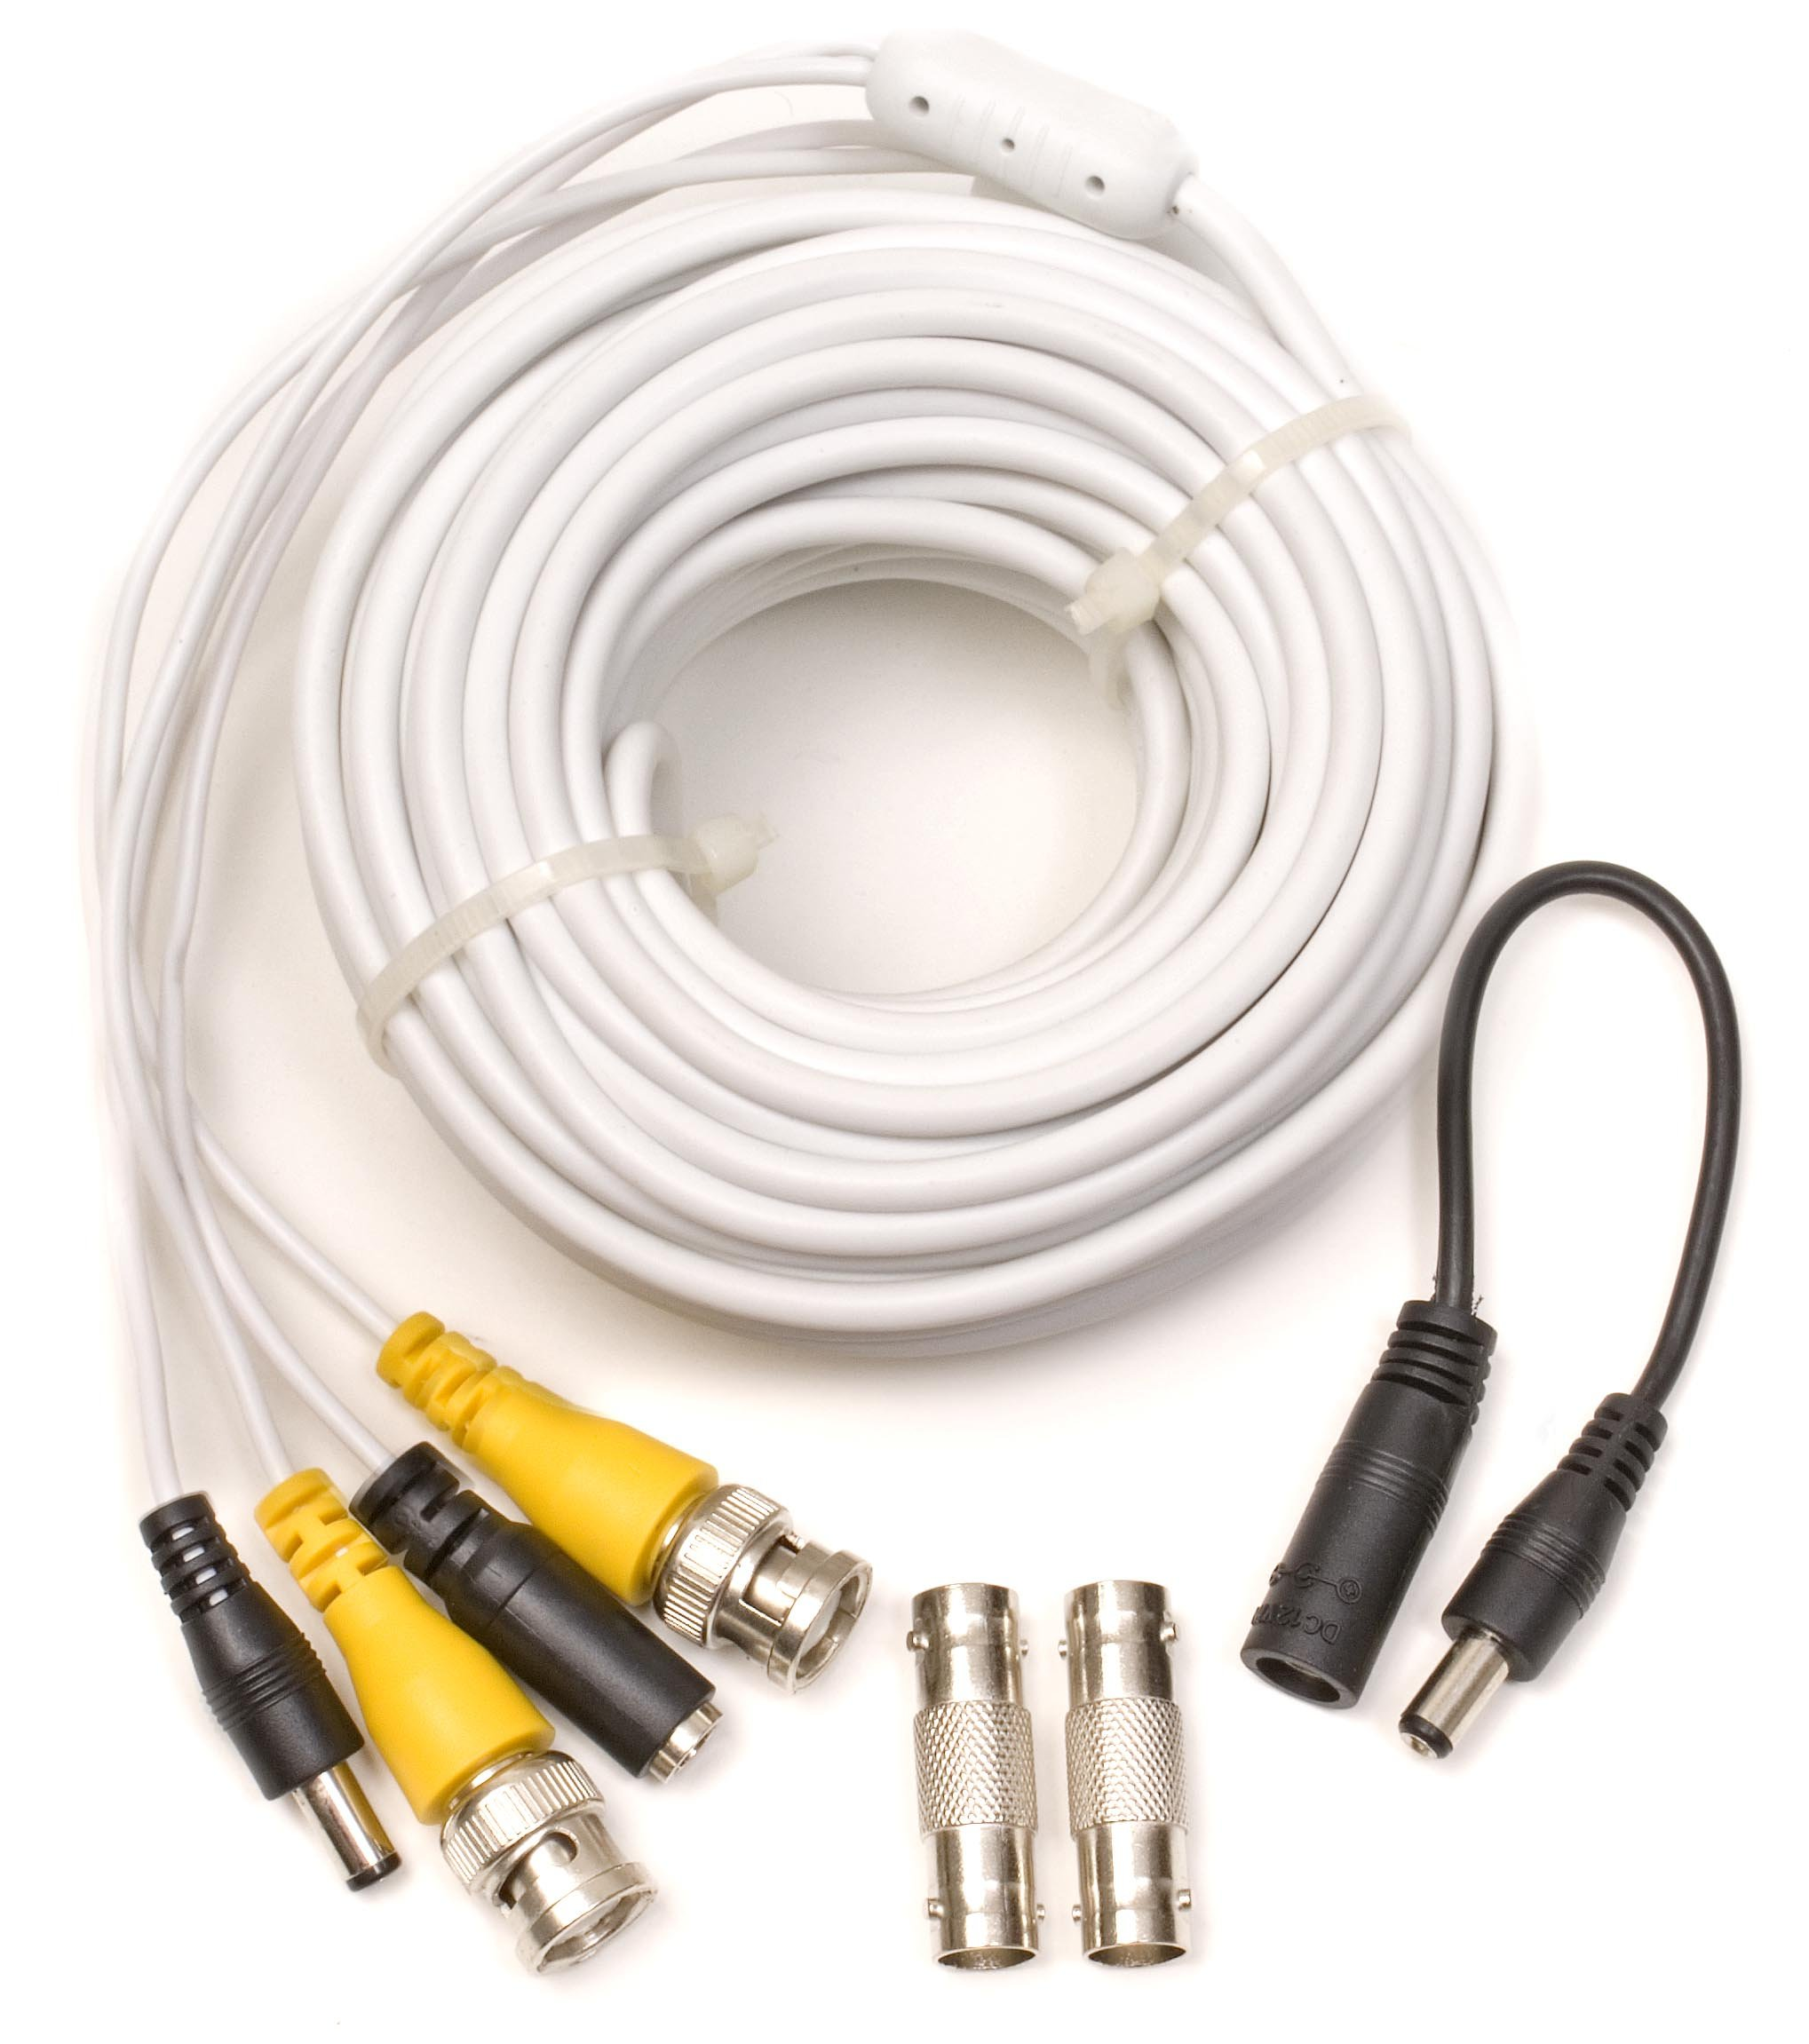 Q-See 50FT BNC Video & Power Cable with 2 Female Connectors